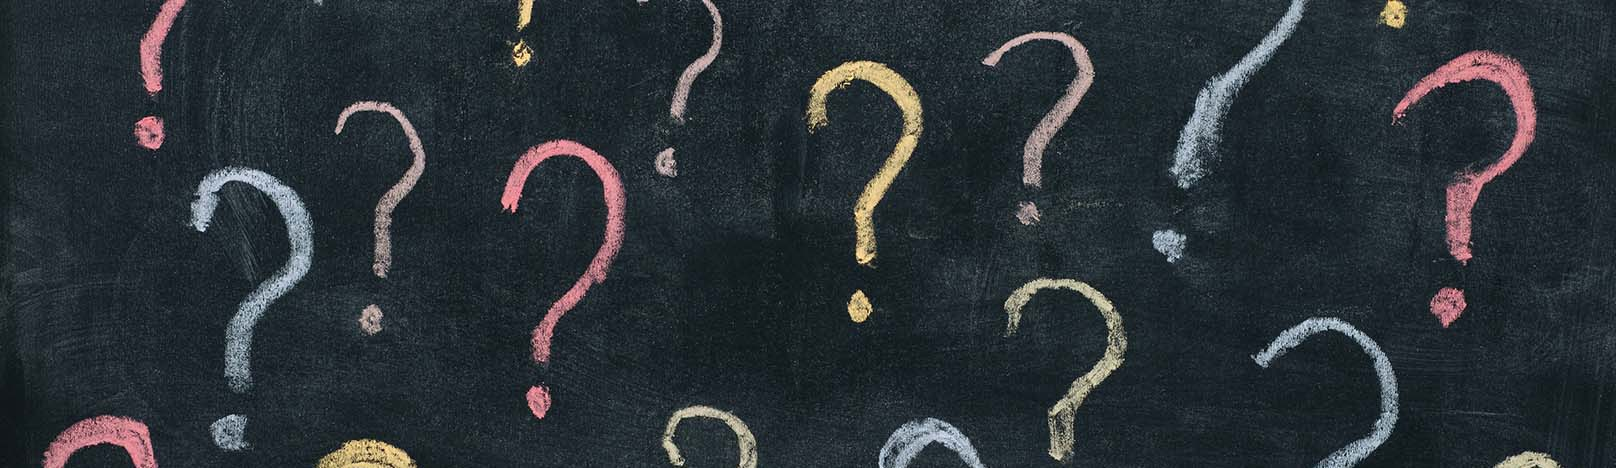 Question Mark Hd Wallpaper Is A Question Mark A Full Stop Oxford Dictionaries